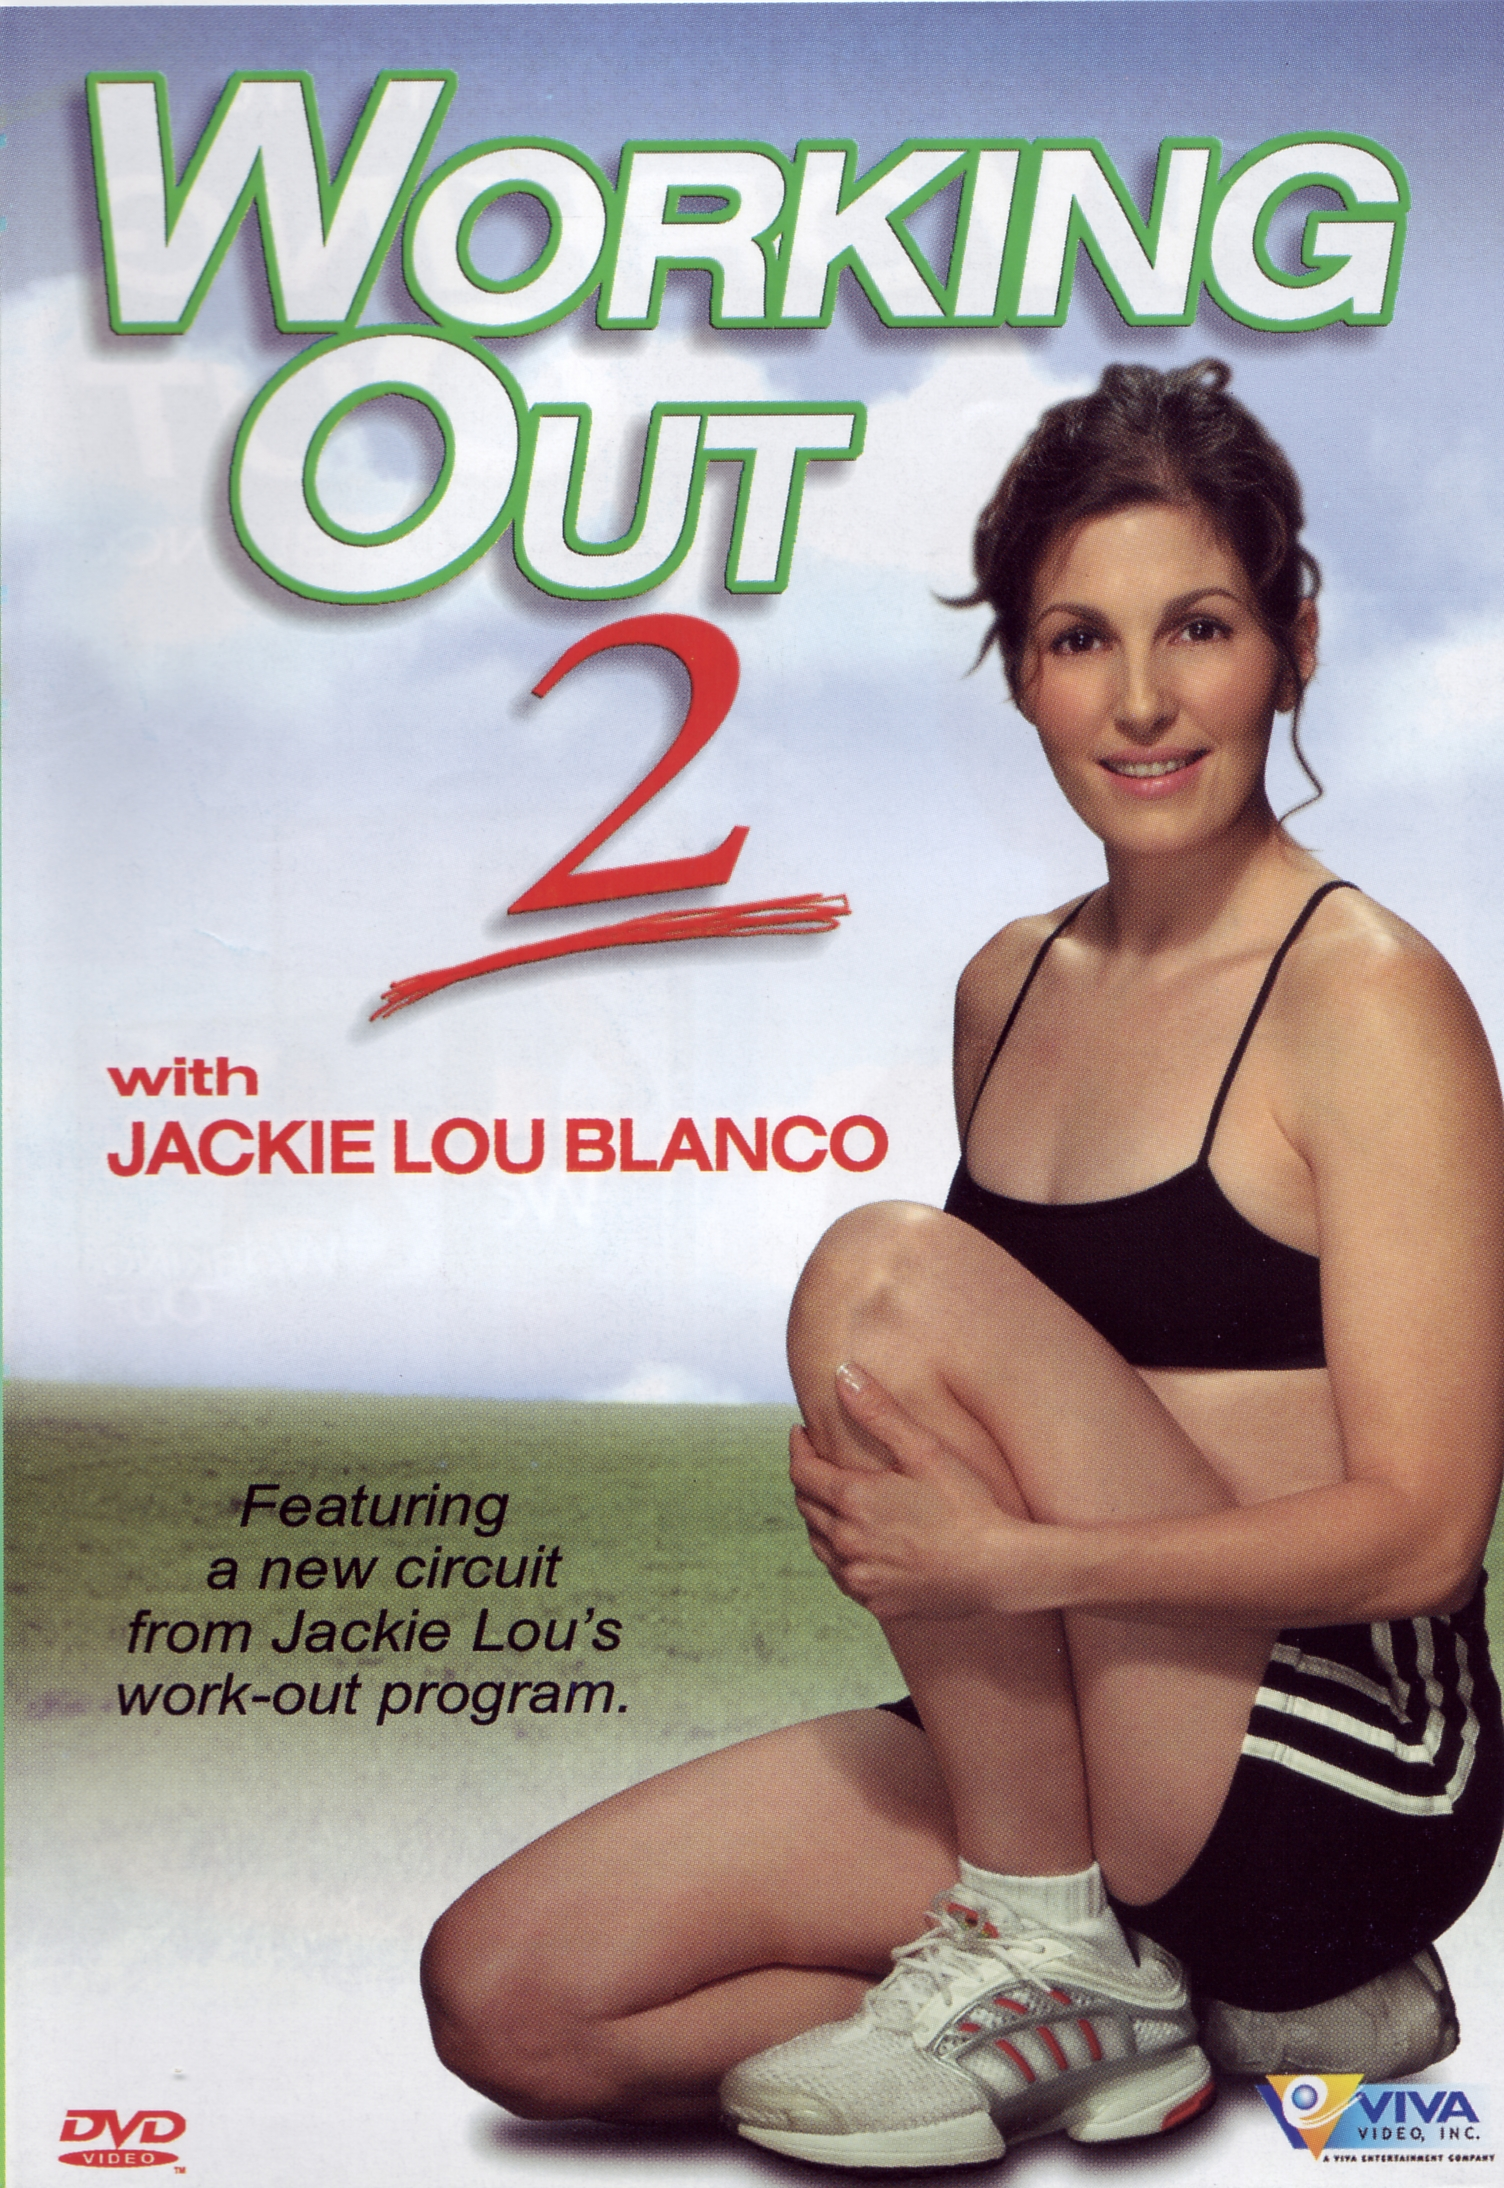 Working Out 2 With Jackie Lou